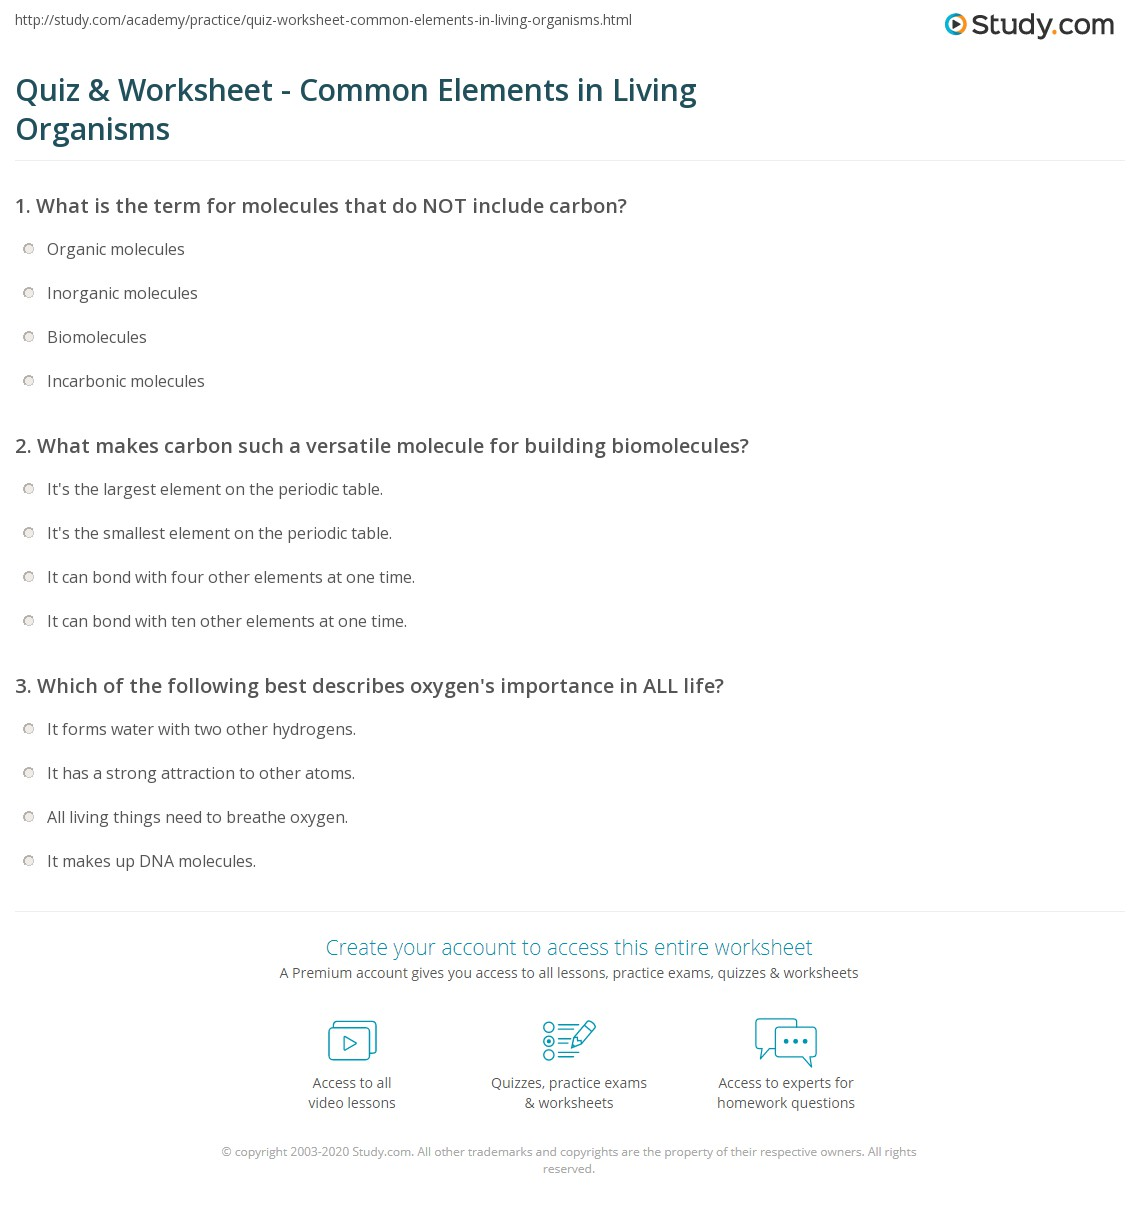 Quiz Worksheet Common Elements In Living Organisms Study